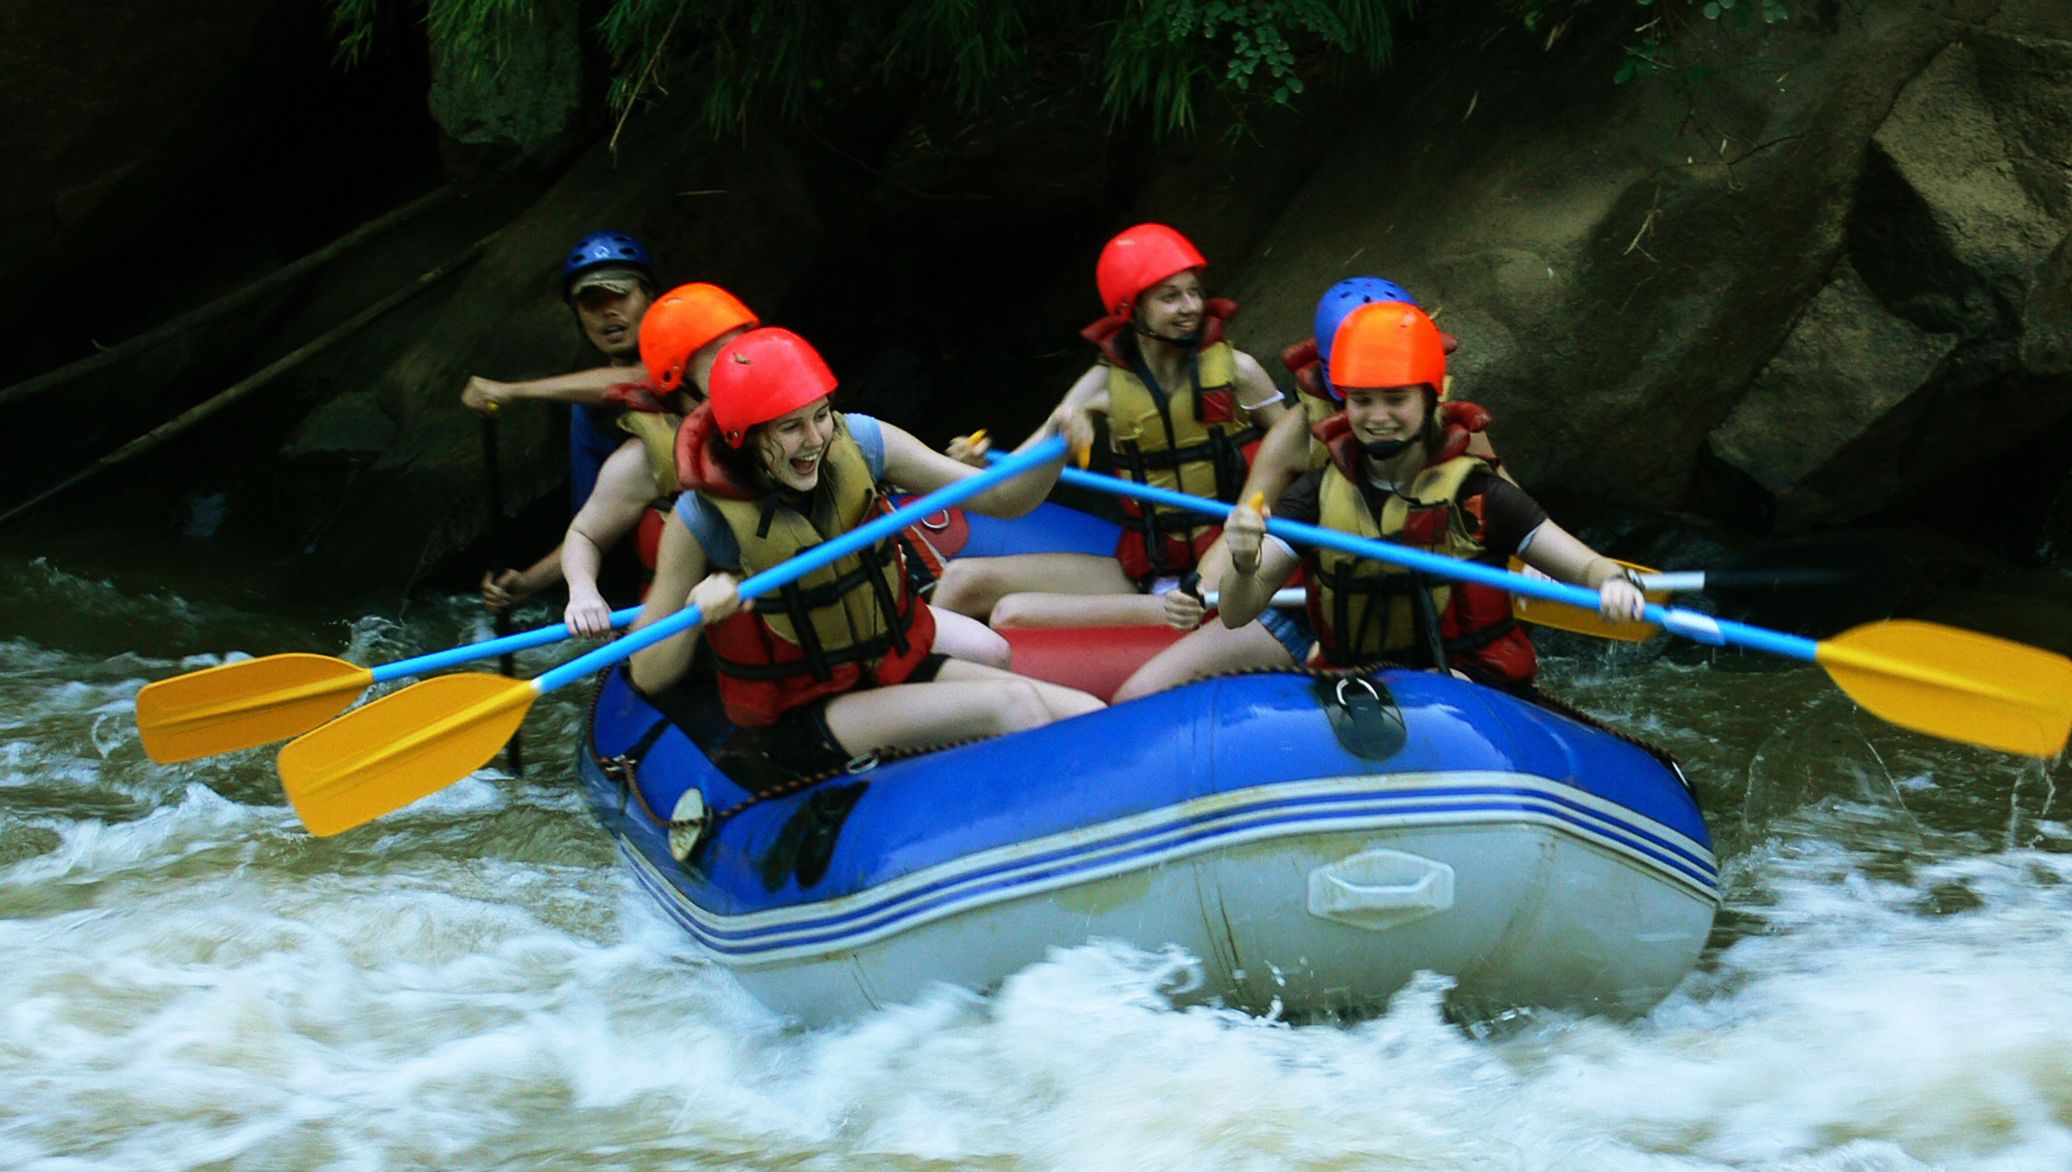 World-class Whitewater Rafting on the Mae Taeng River